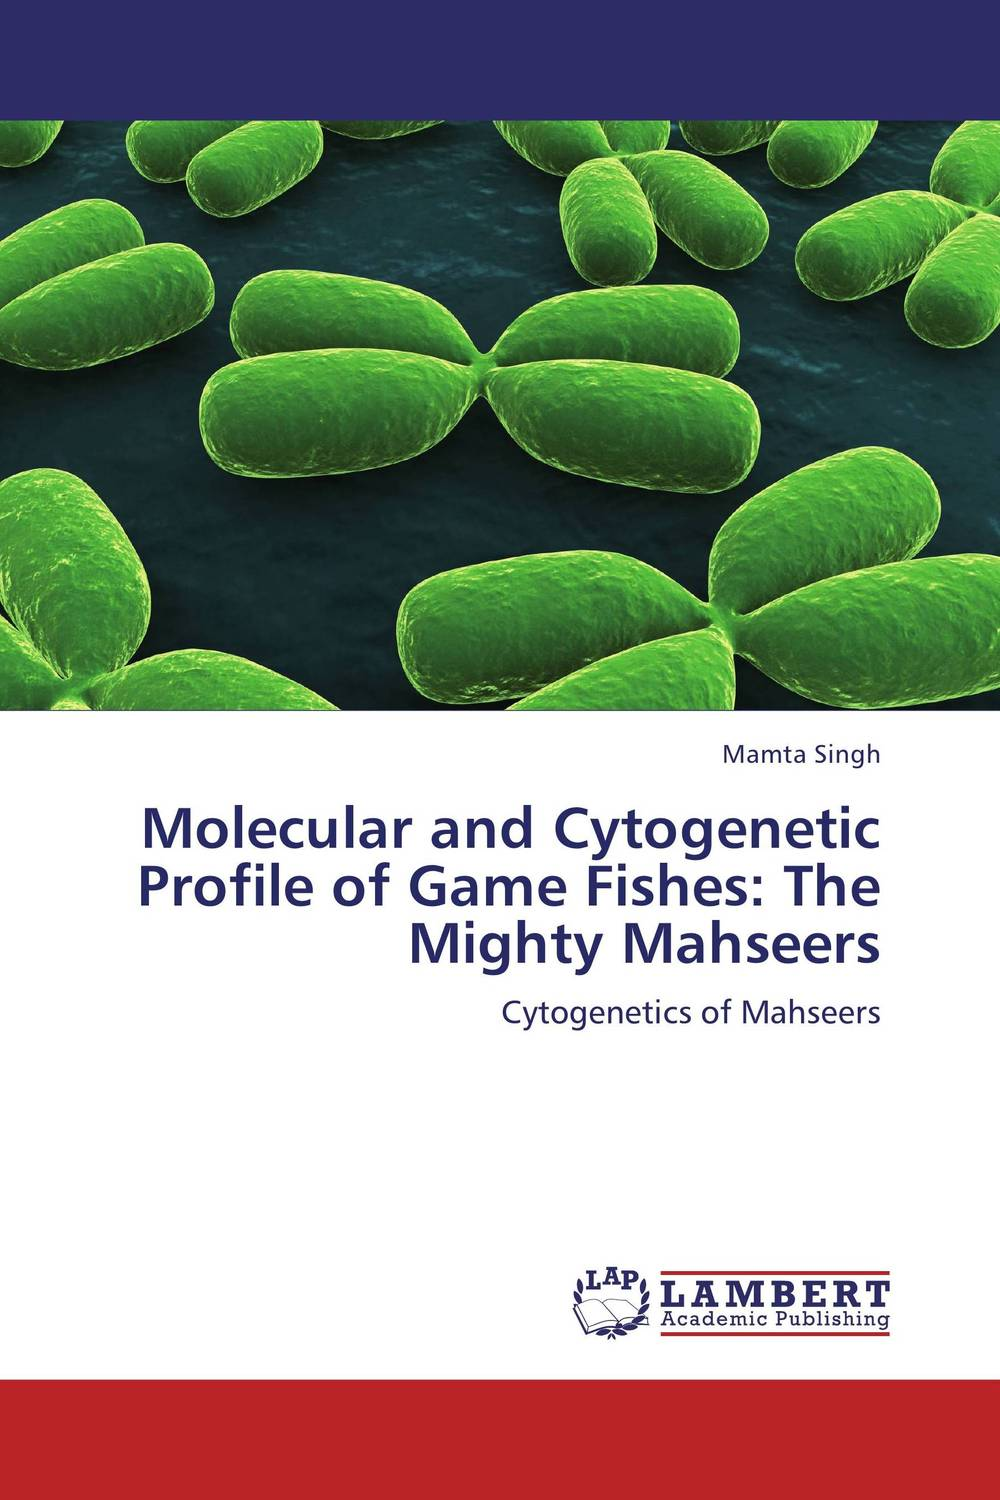 Molecular and Cytogenetic Profile of Game Fishes: The Mighty Mahseers molecular and cytogenetic profile of game fishes the mighty mahseers